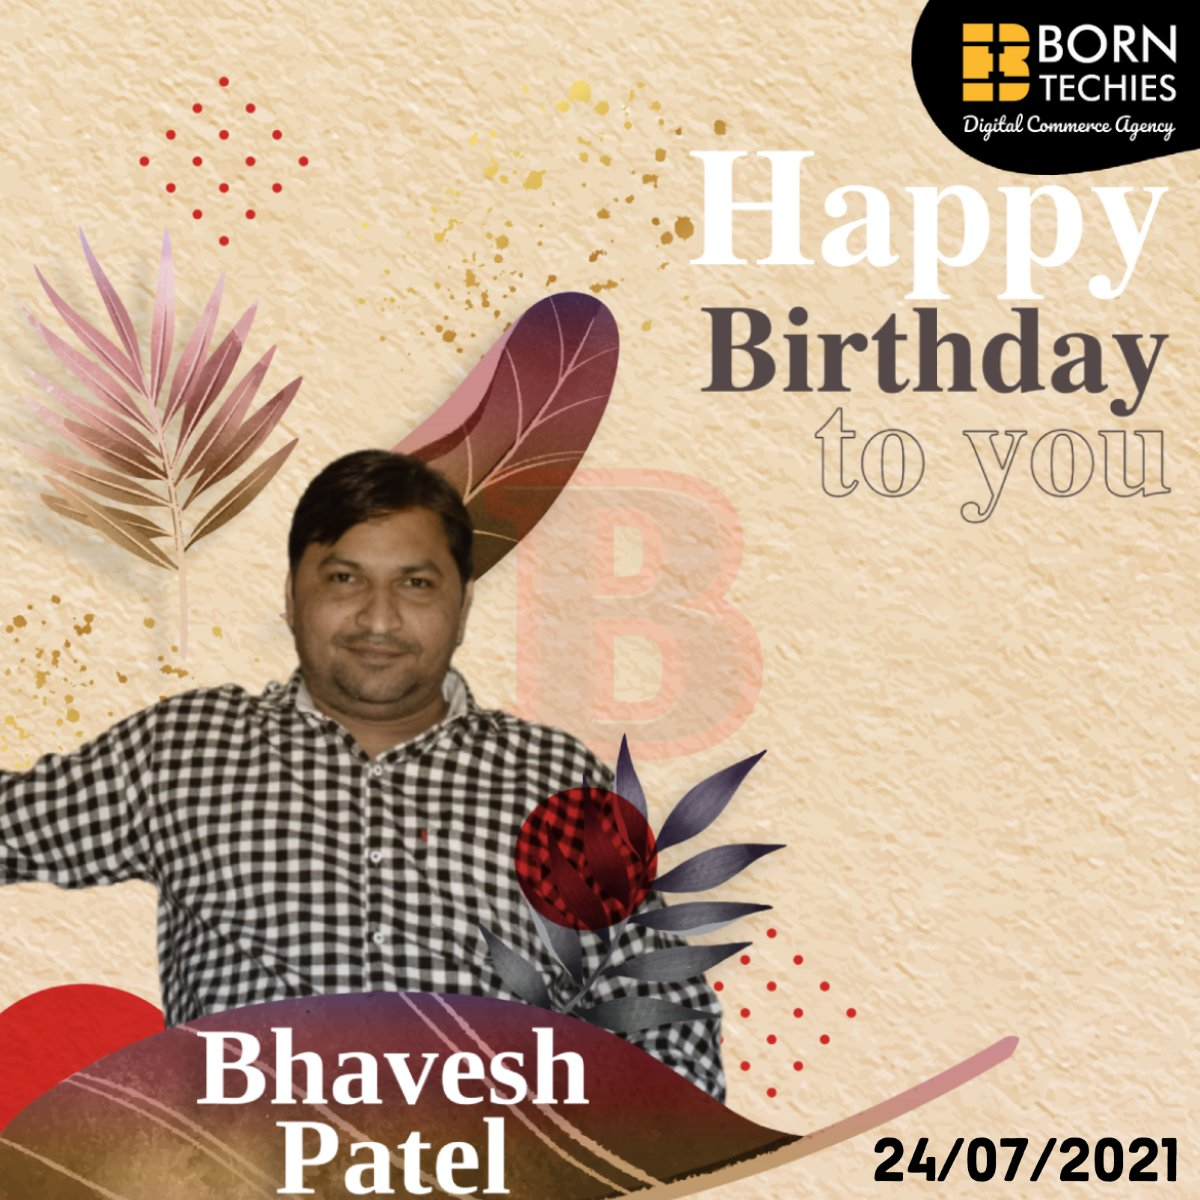 Happy birthday to a wonderful person who means so many different things to our company! BTPL team wishes you an amazing year that ends with accomplishing all the great goals that you have set! #birthday #love #happybirthday #party #cake #birthdaycake #birthdayboy #digitalwishes4u https://t.co/nH1rNdExdS